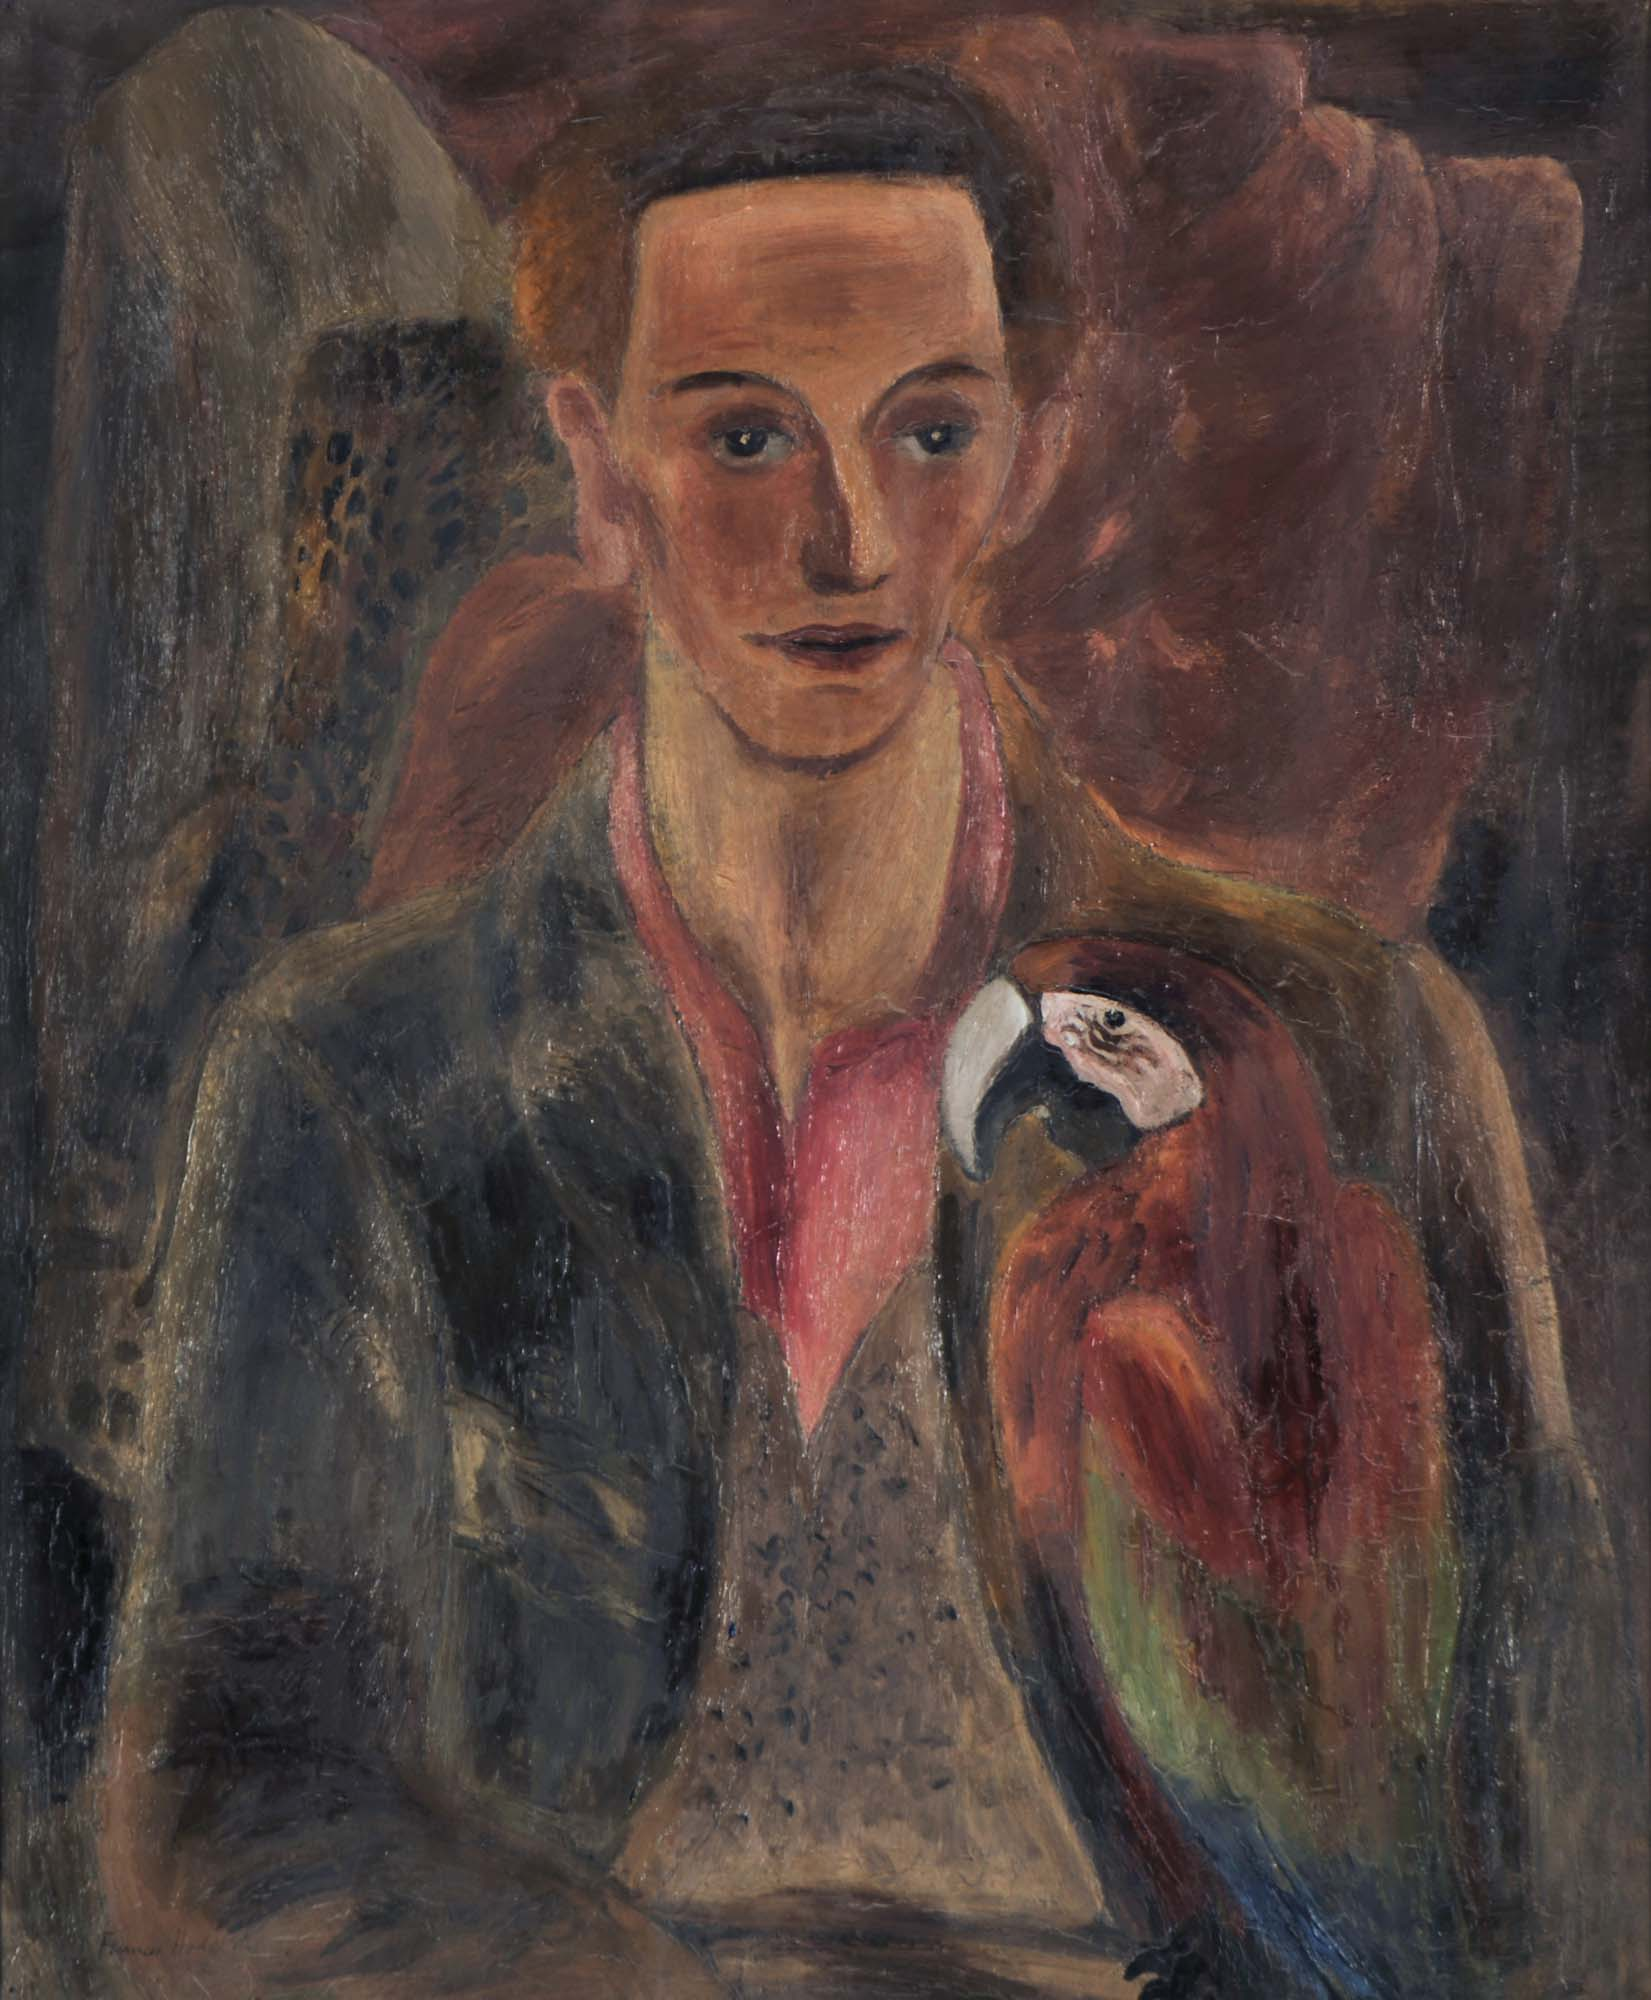 a painted portrait of man in a jacket and pink shirt holding a parrot